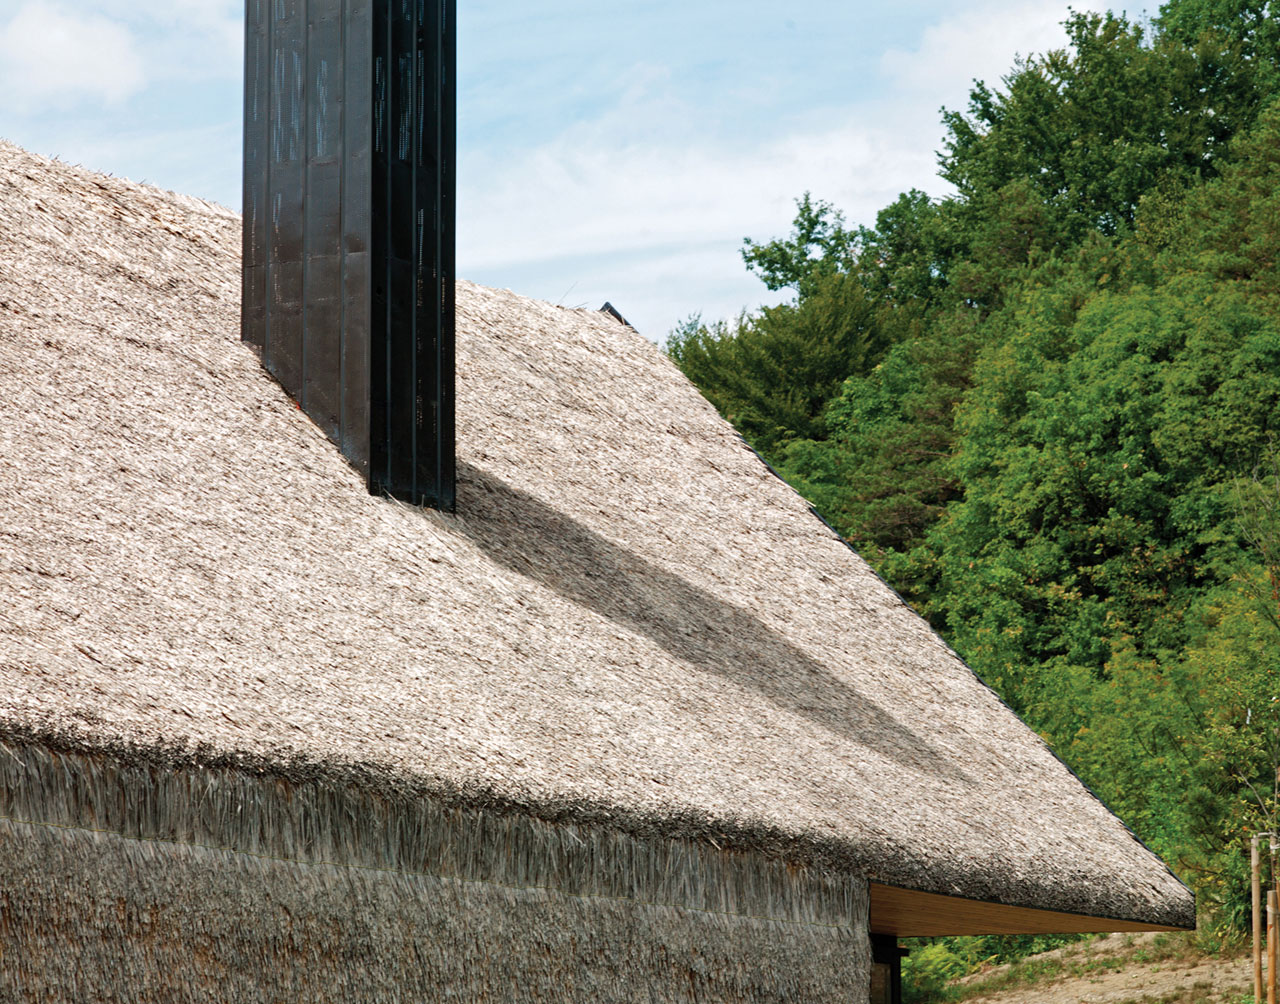 A detail of the thatched roof and the connection to the vertical wall.